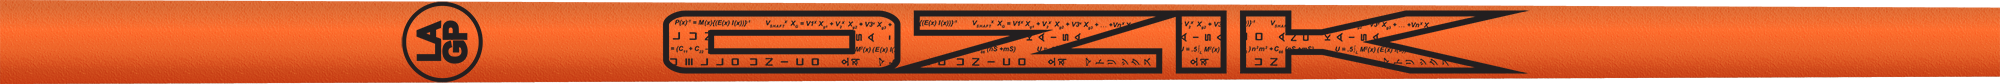 Ozik White Tie: Neon Orange Black Textured - Wood 40 A